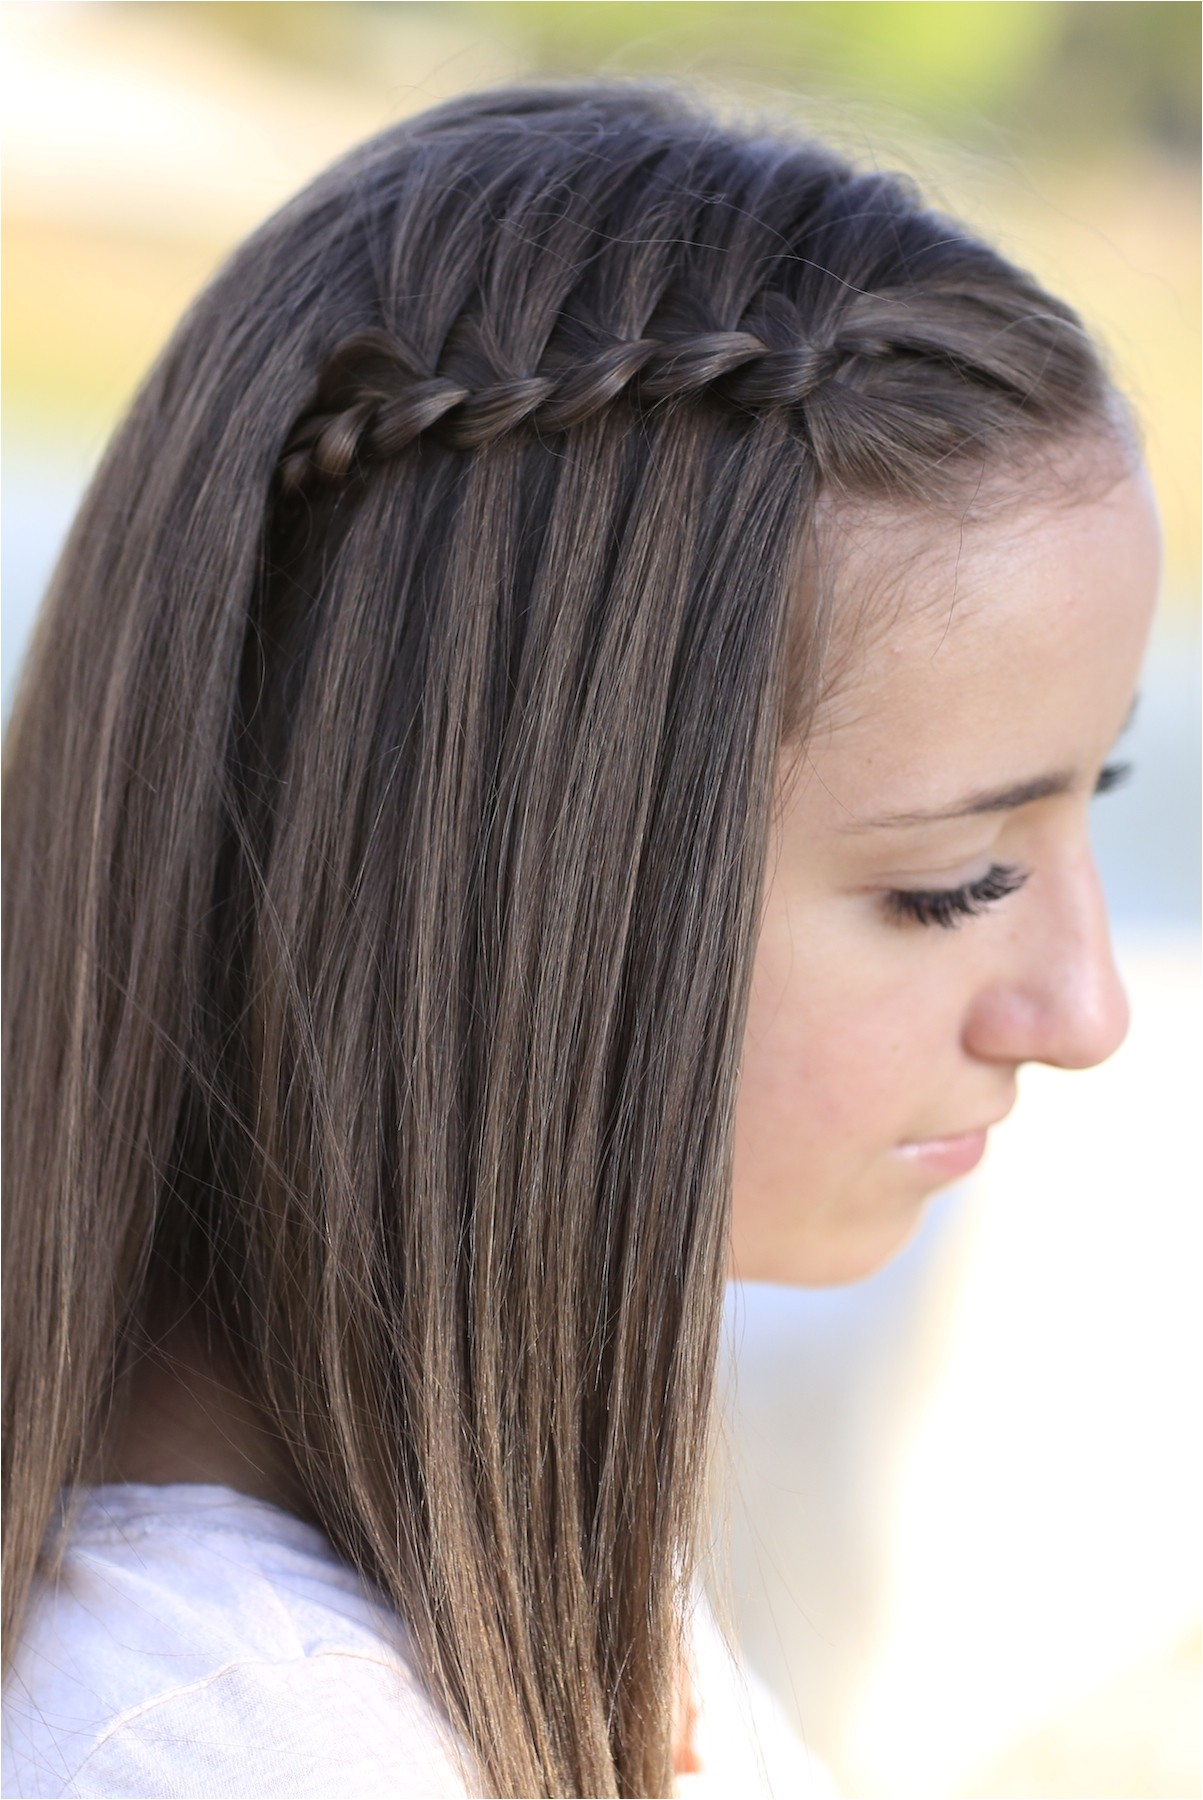 Easy Hairstyles for 10 Year Olds top 10 Hairstyles for 12 Year Old Girls